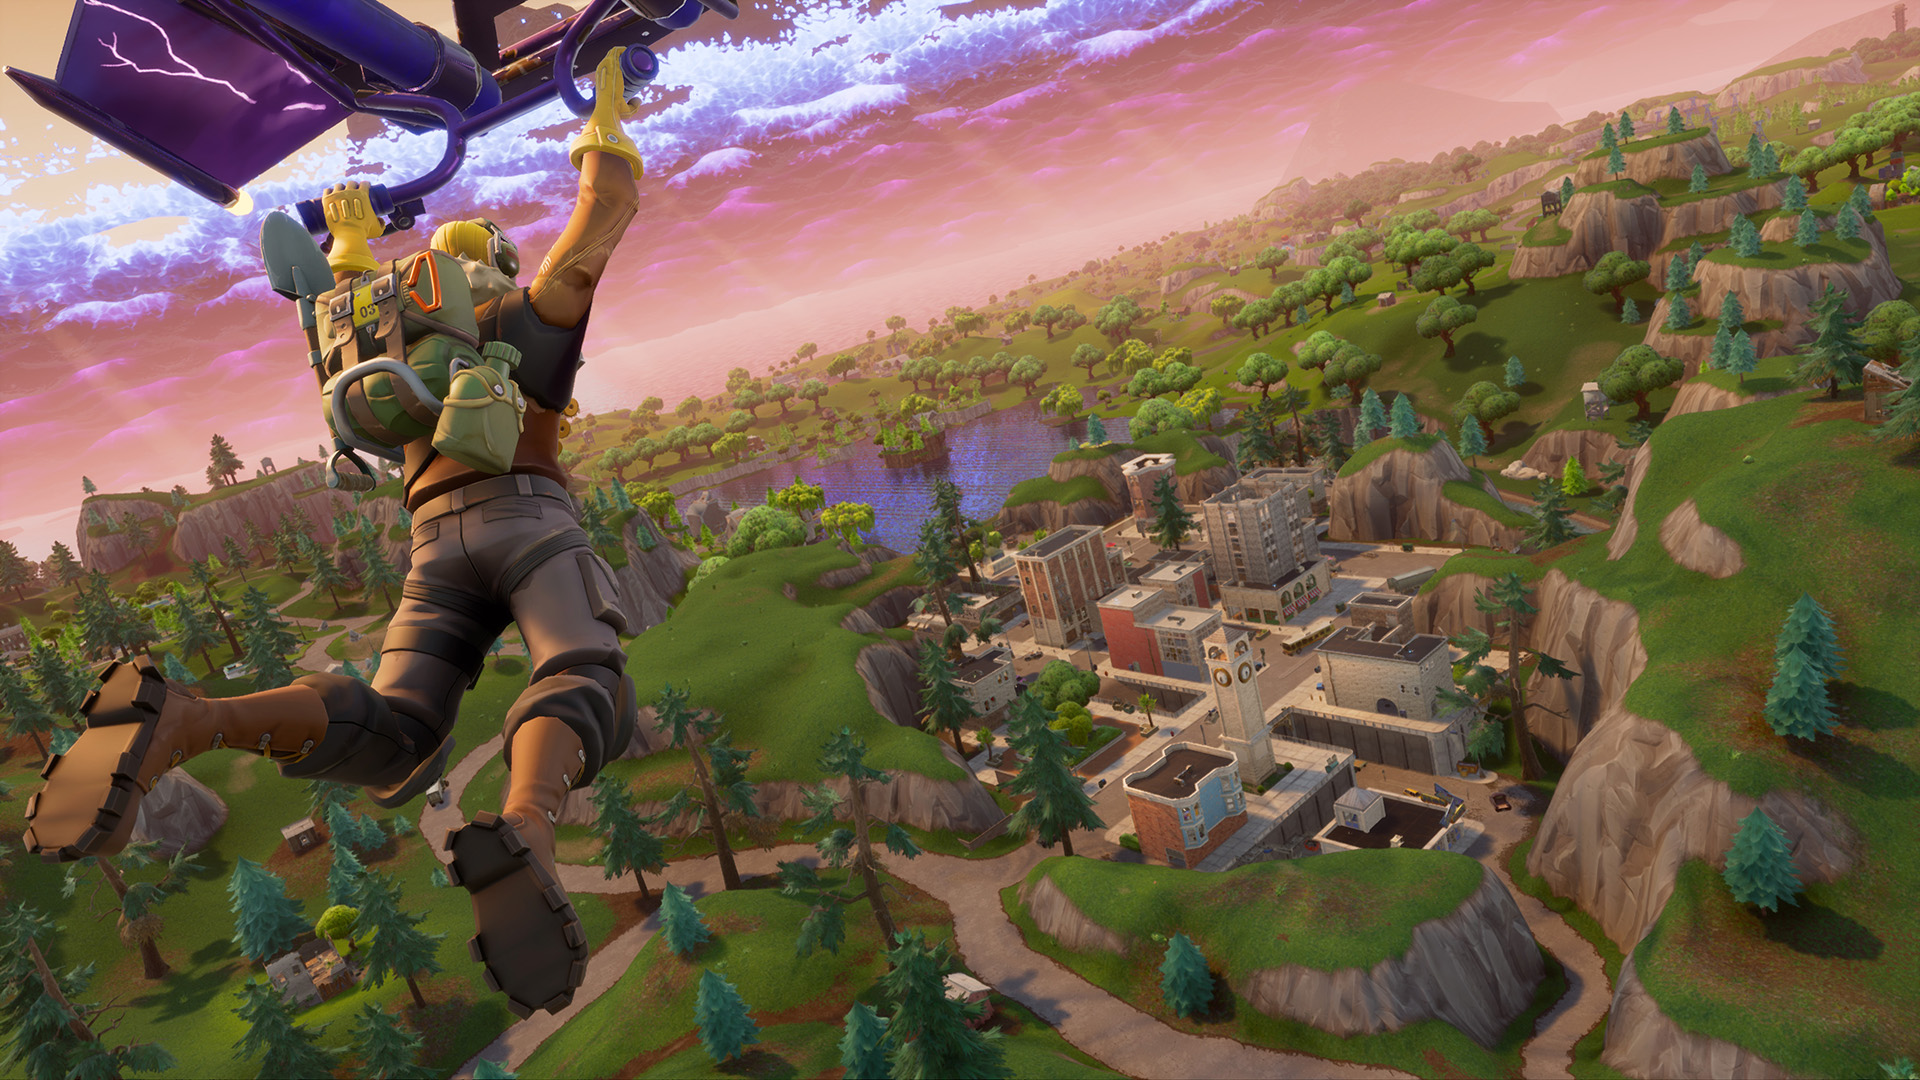 Fortnite is getting a new Battle Royale game mode tomorrow featuring     Fortnite is getting a new Battle Royale game mode tomorrow featuring five  teams of 20 players  Updated    PC Gamer